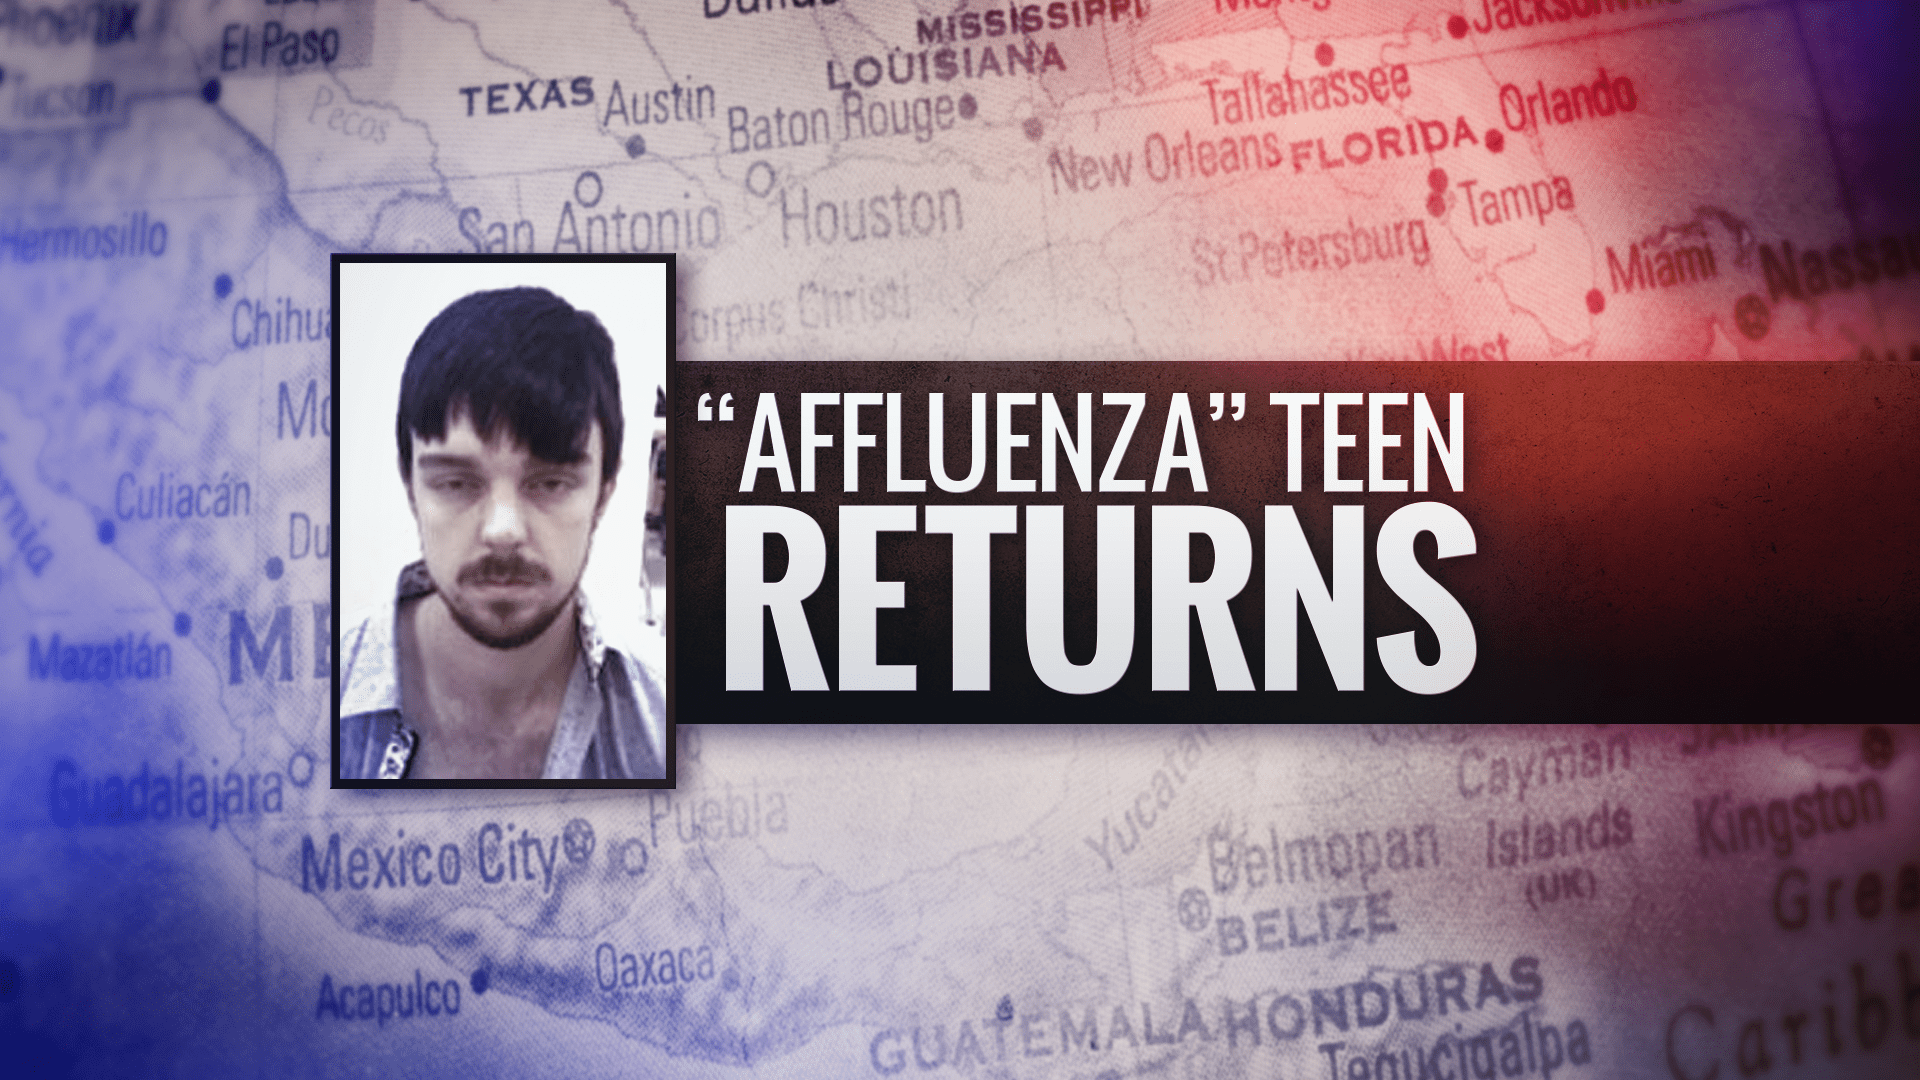 Affluenza Teen Returns_130990